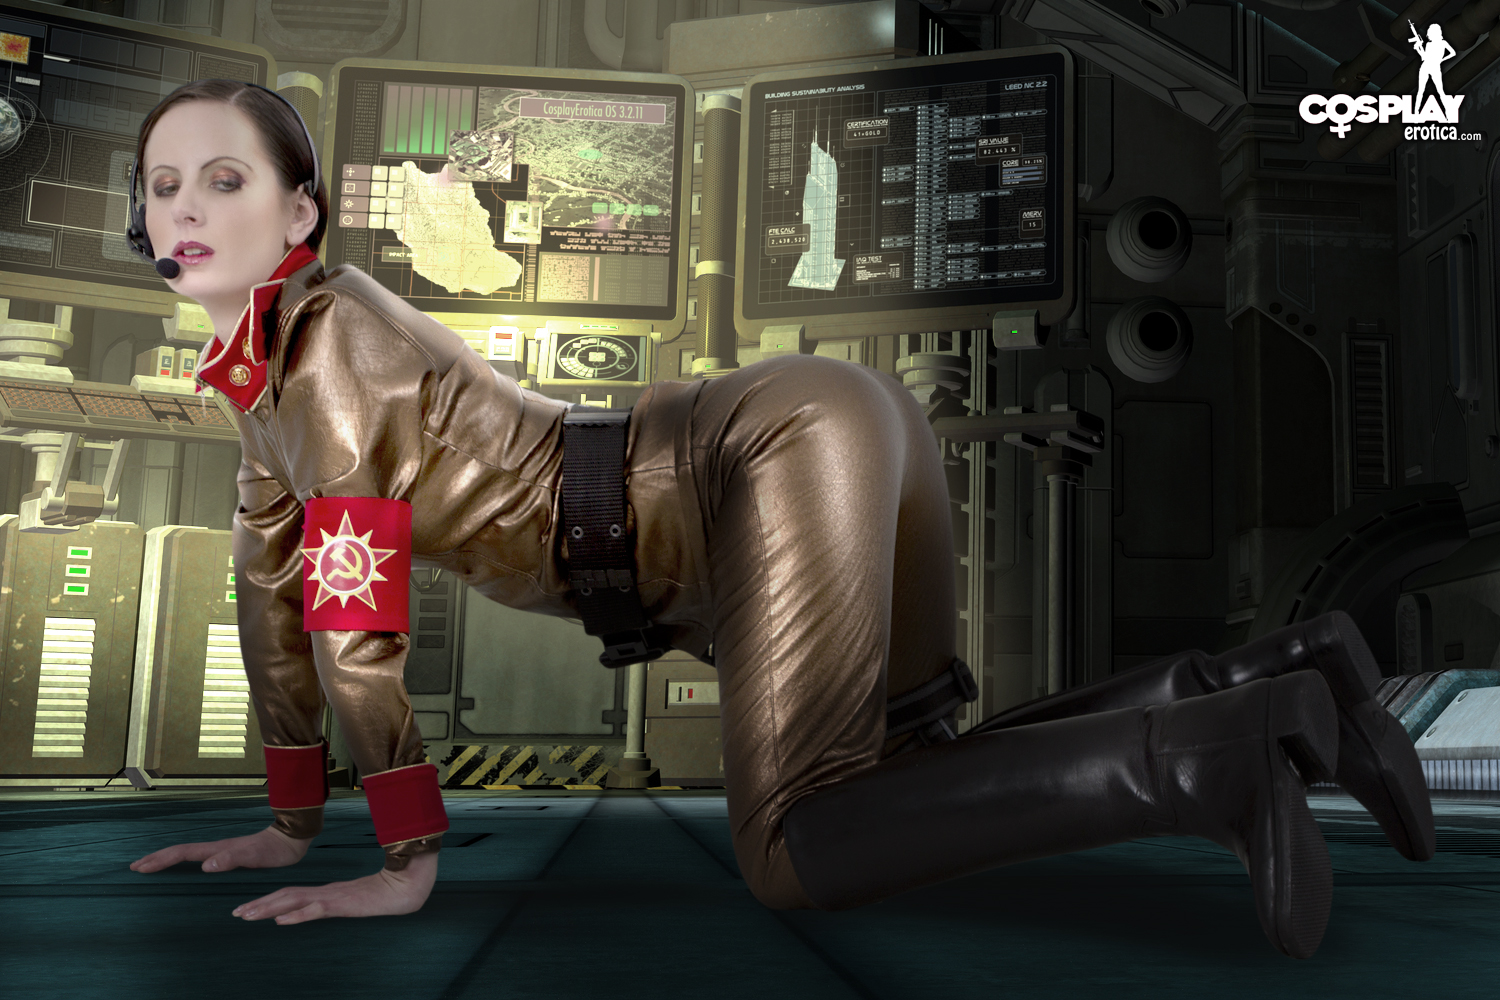 Cosplay Erotica's Tina Is The Commander In Charge